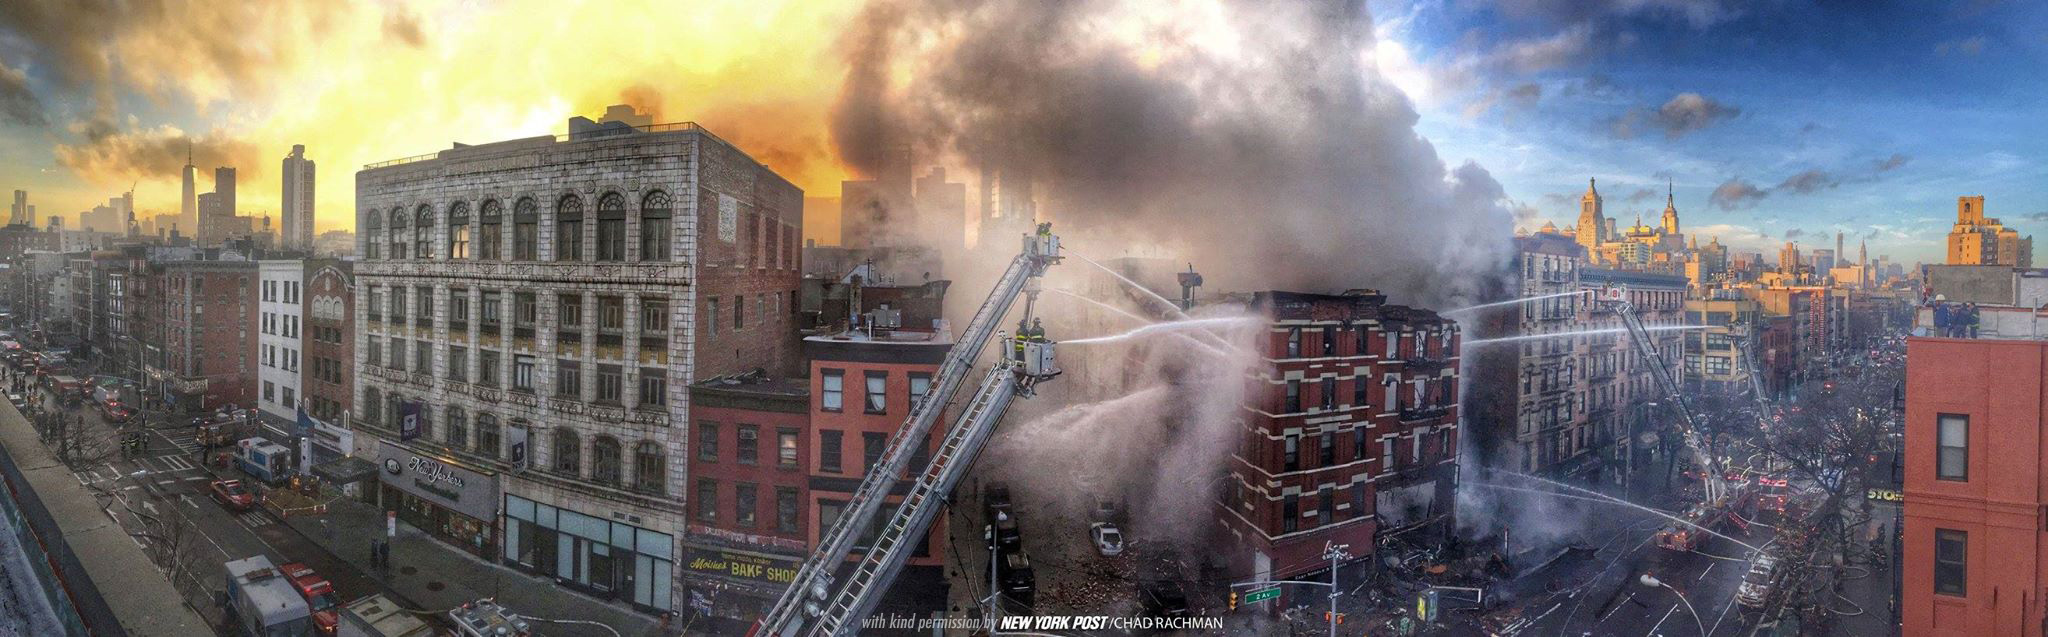 NYC_gas_explosion_chad_rachman